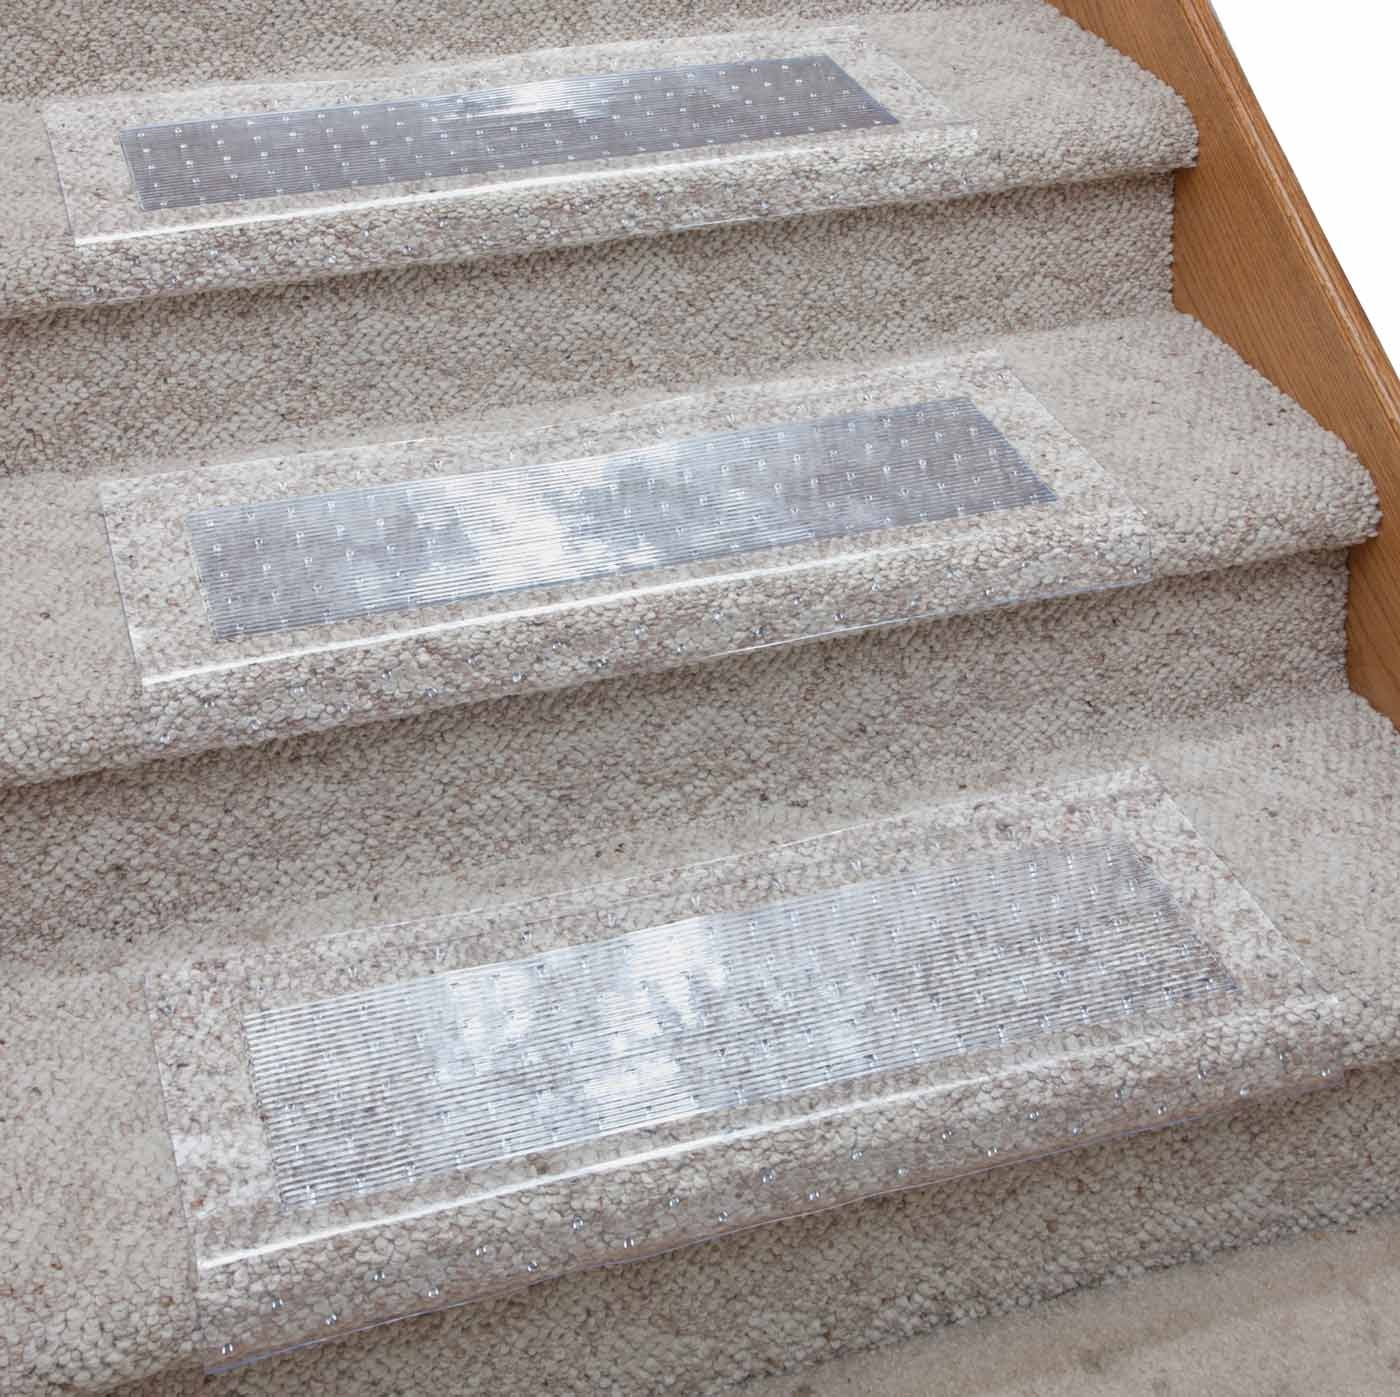 54 Stair Carpet Protectors Protector Carpets Inspirations Vinyl Intended For Carpet Stair Pads (Image 1 of 15)